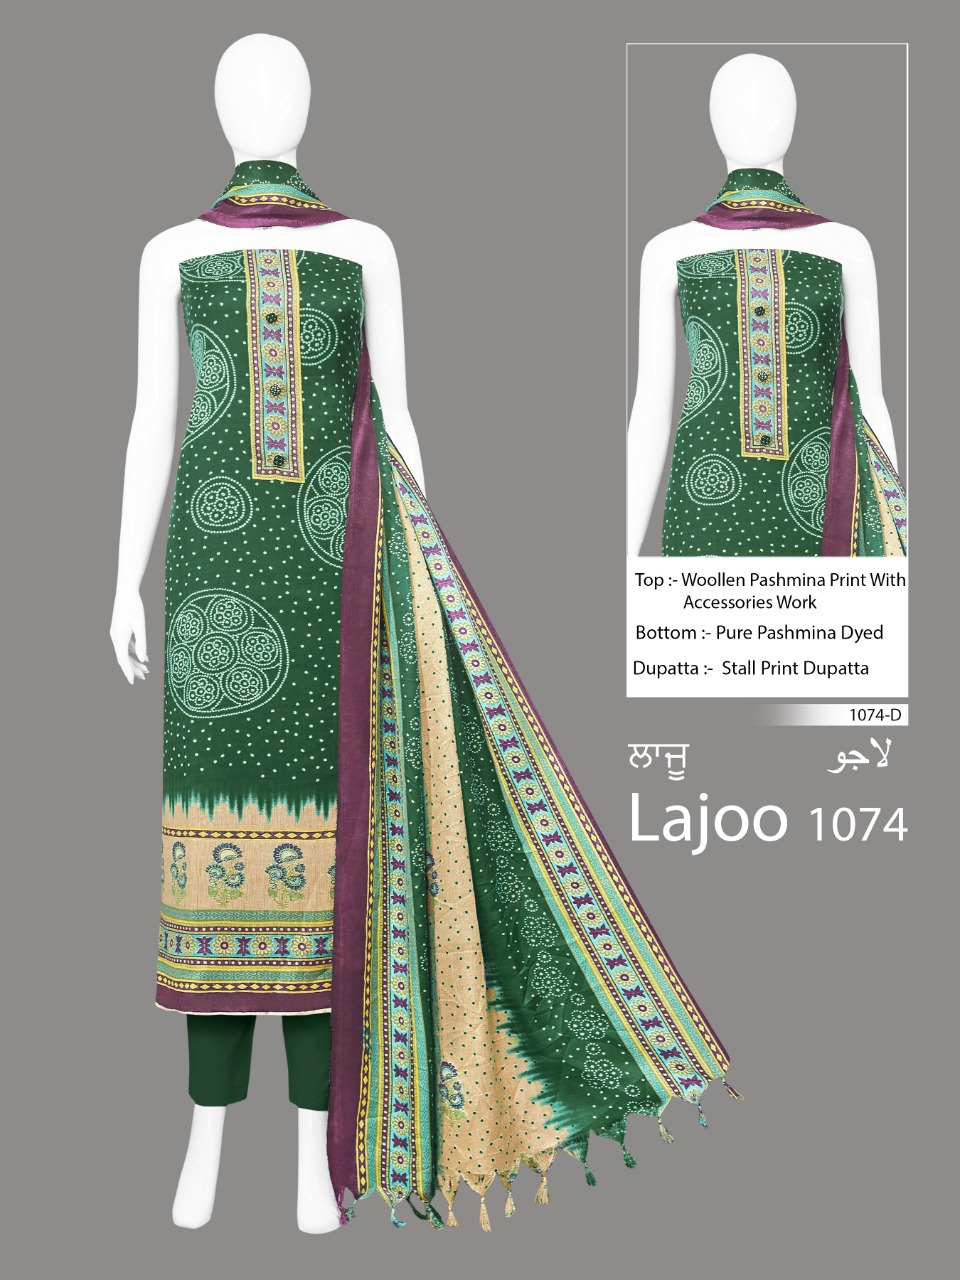 Lajoo 1074 Designer Woolen Pashmina Printed With Accessories Work Suits Wholesale